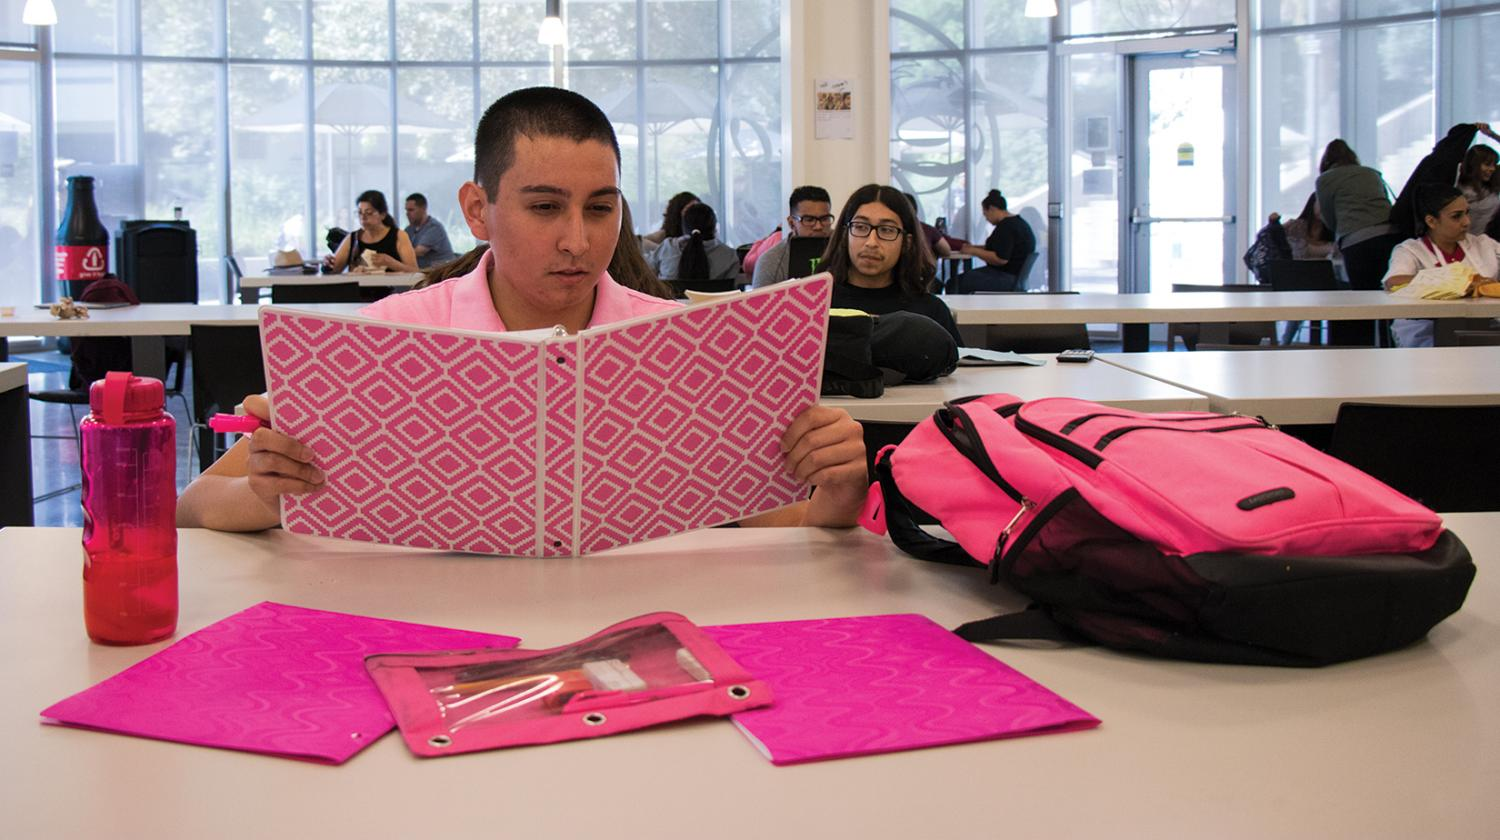 Michael Medrano shows off his pink aesthetic  Inside Rio Hondo's Campus Cafe.